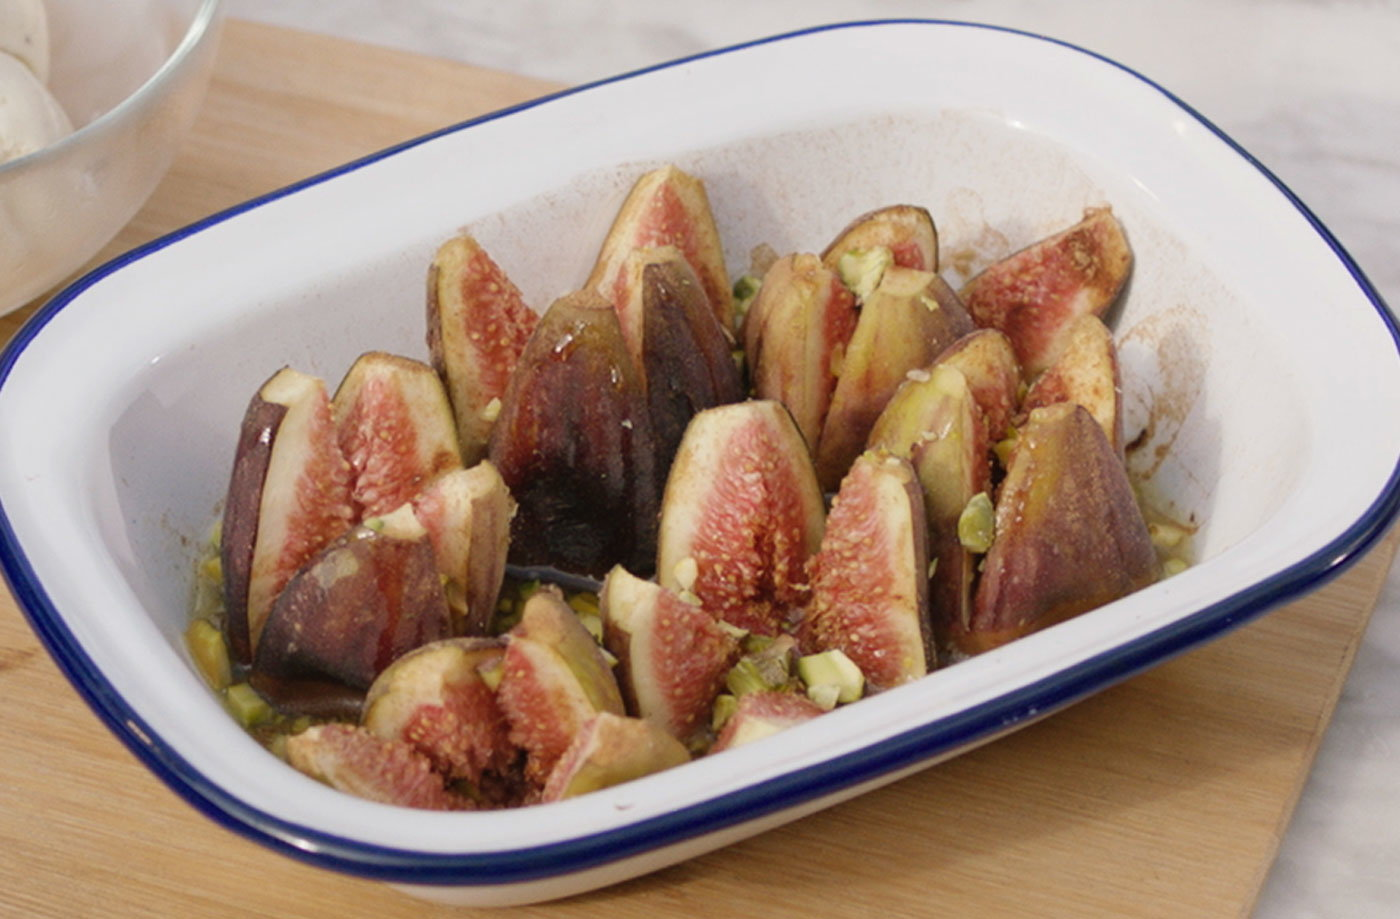 Barbecue-baked figs with honey and cinnamon recipe